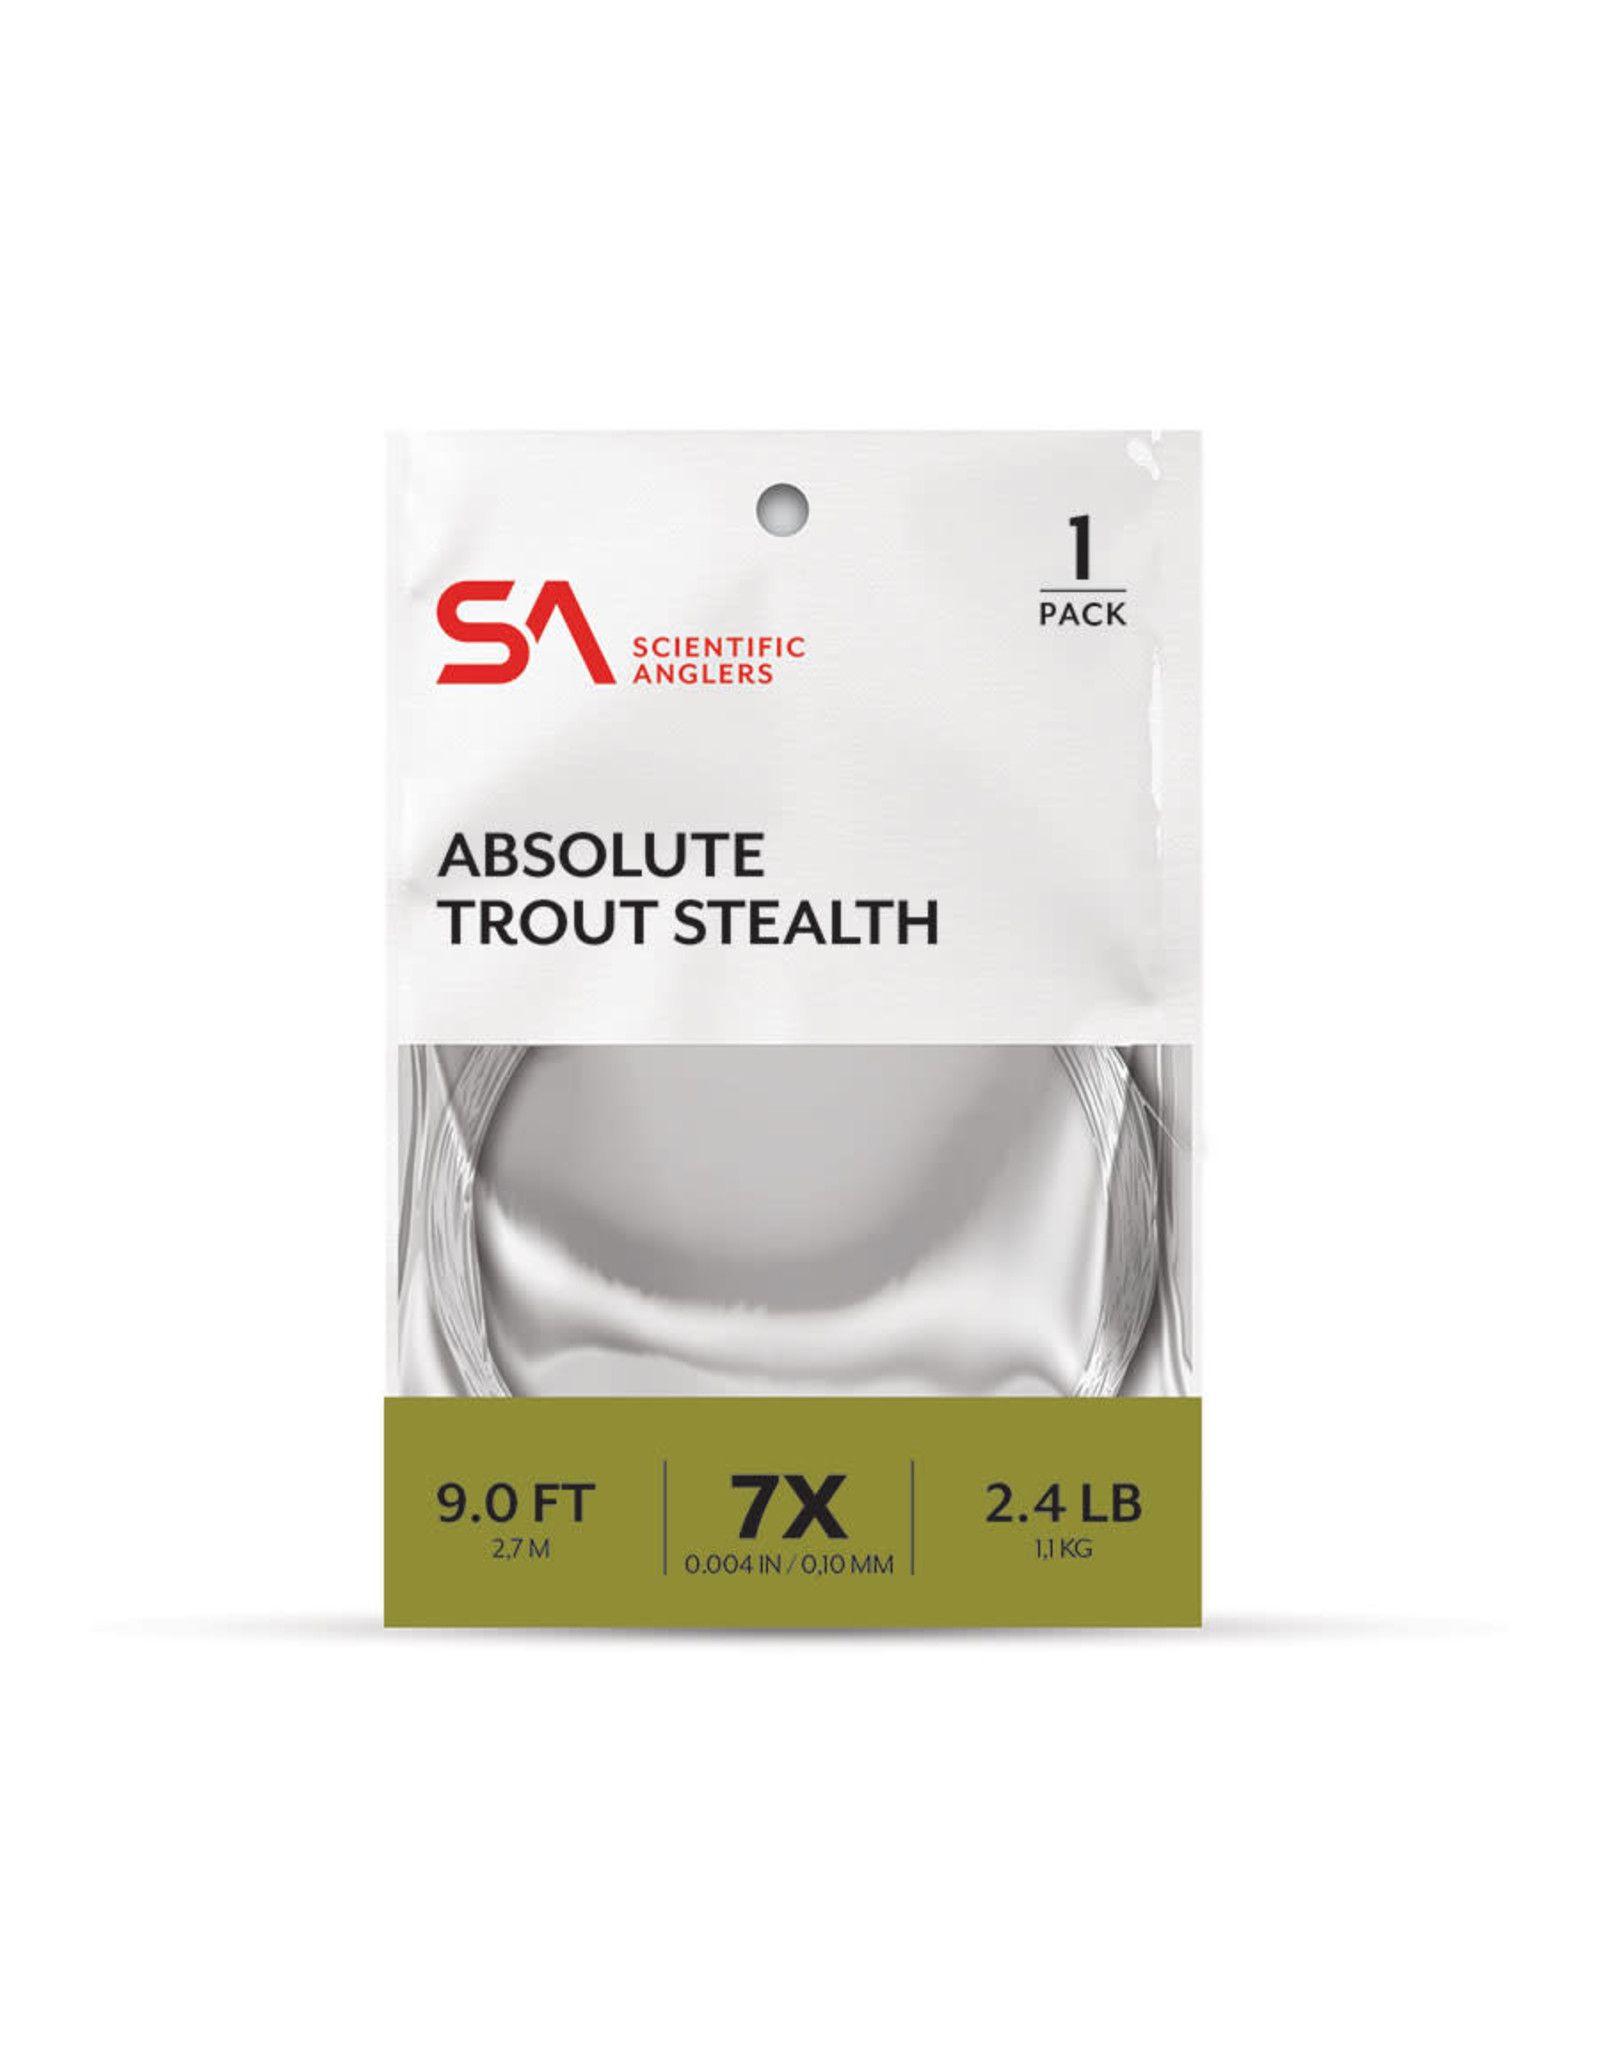 SCIENTIFIC ANGLERS Absolute Trout Stealth Leader - 1 Pack 9'